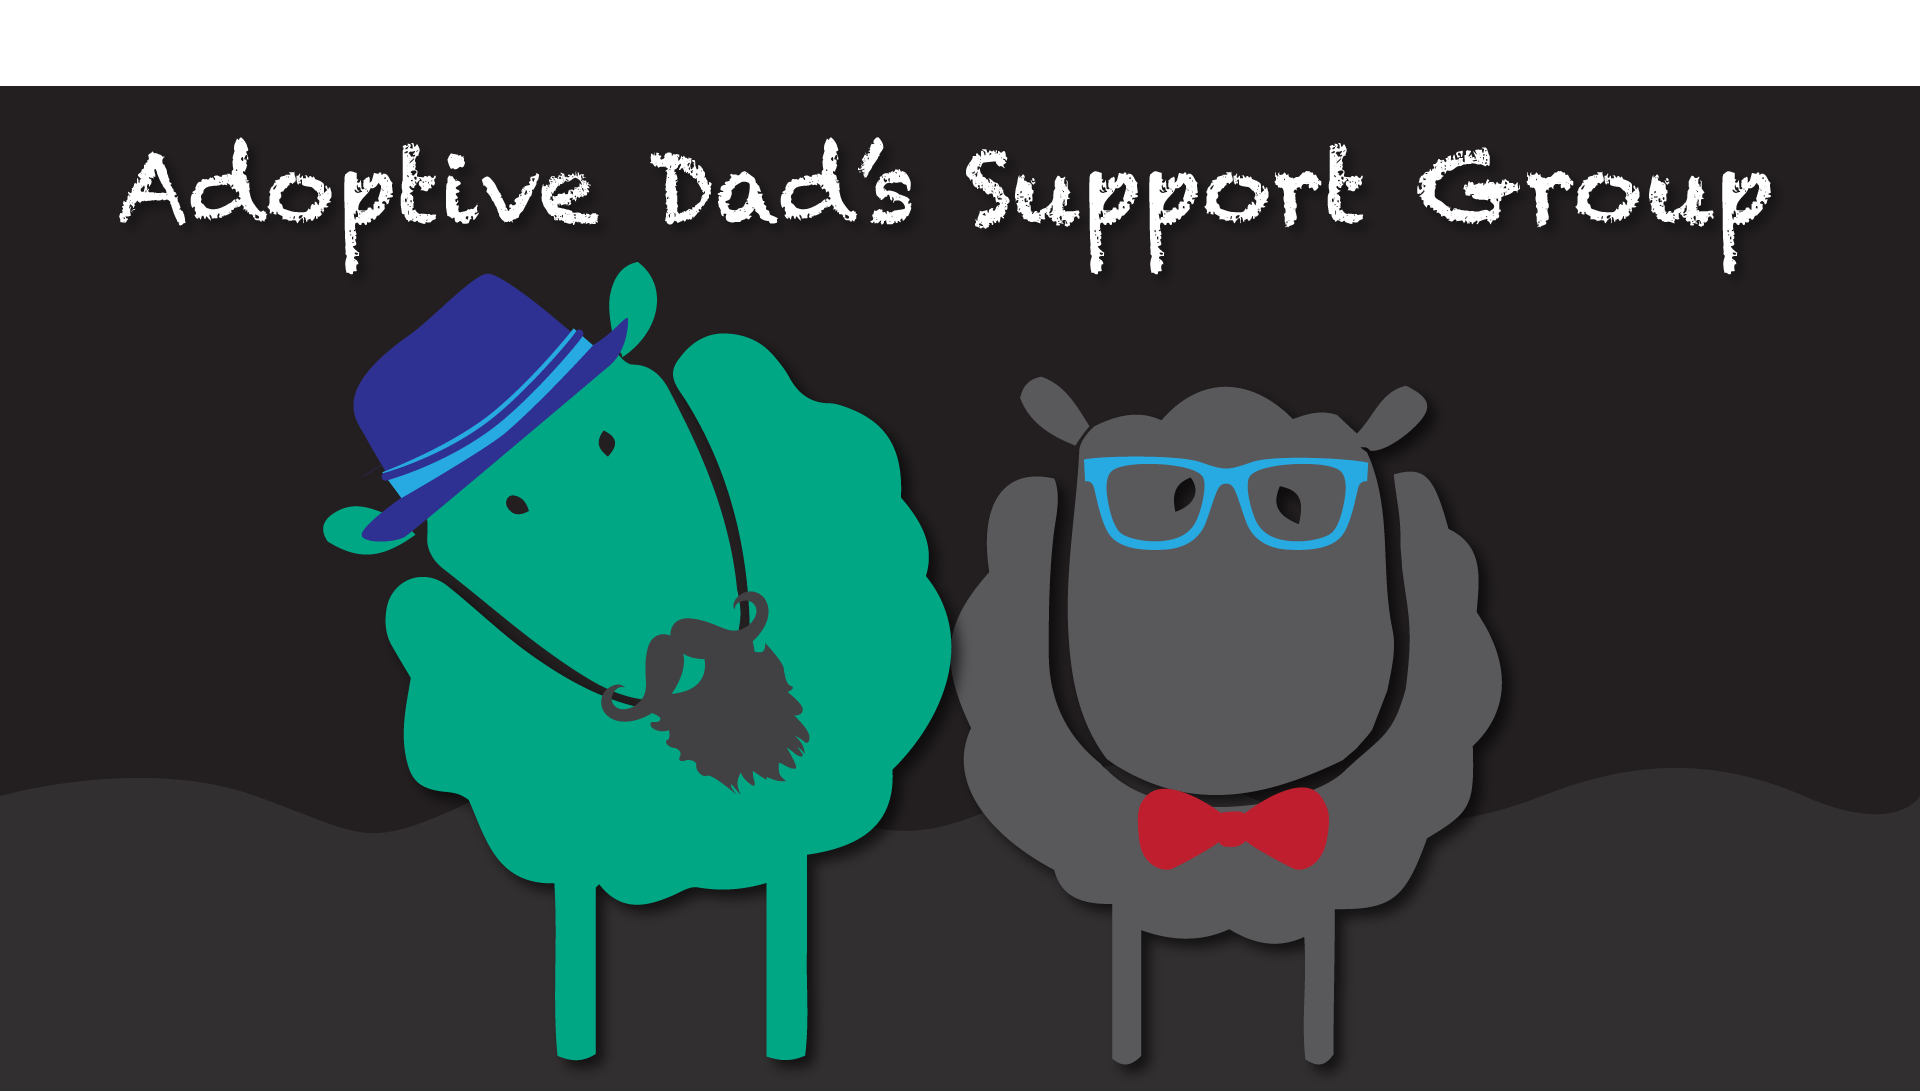 Adoptive Dads Support Group logo